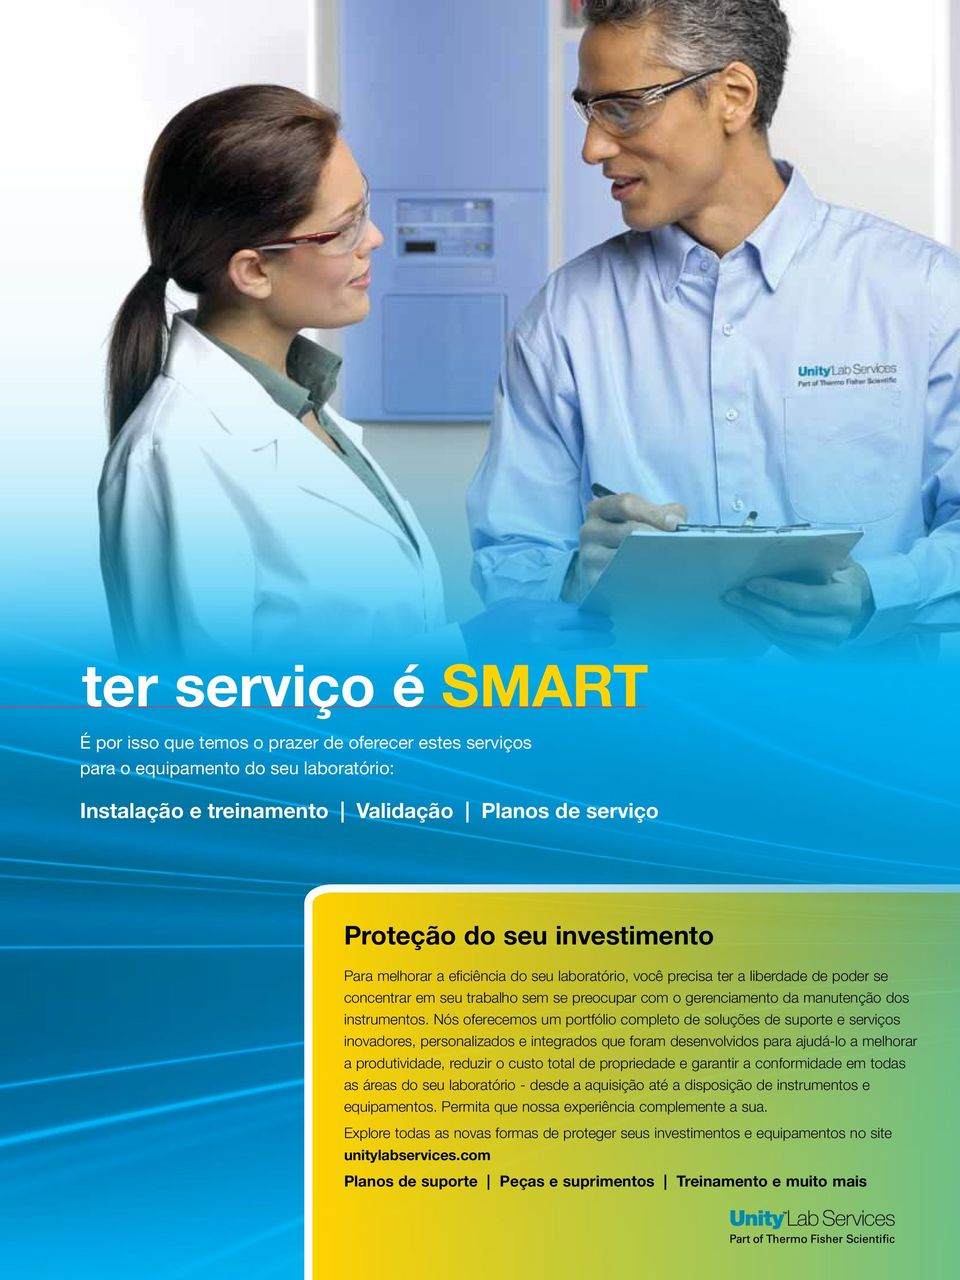 We provide a complete portfolio Proteção of customized, do integrated seu and investimento innovative services and support solutions designed to help you improve productivity, reduce total cost of